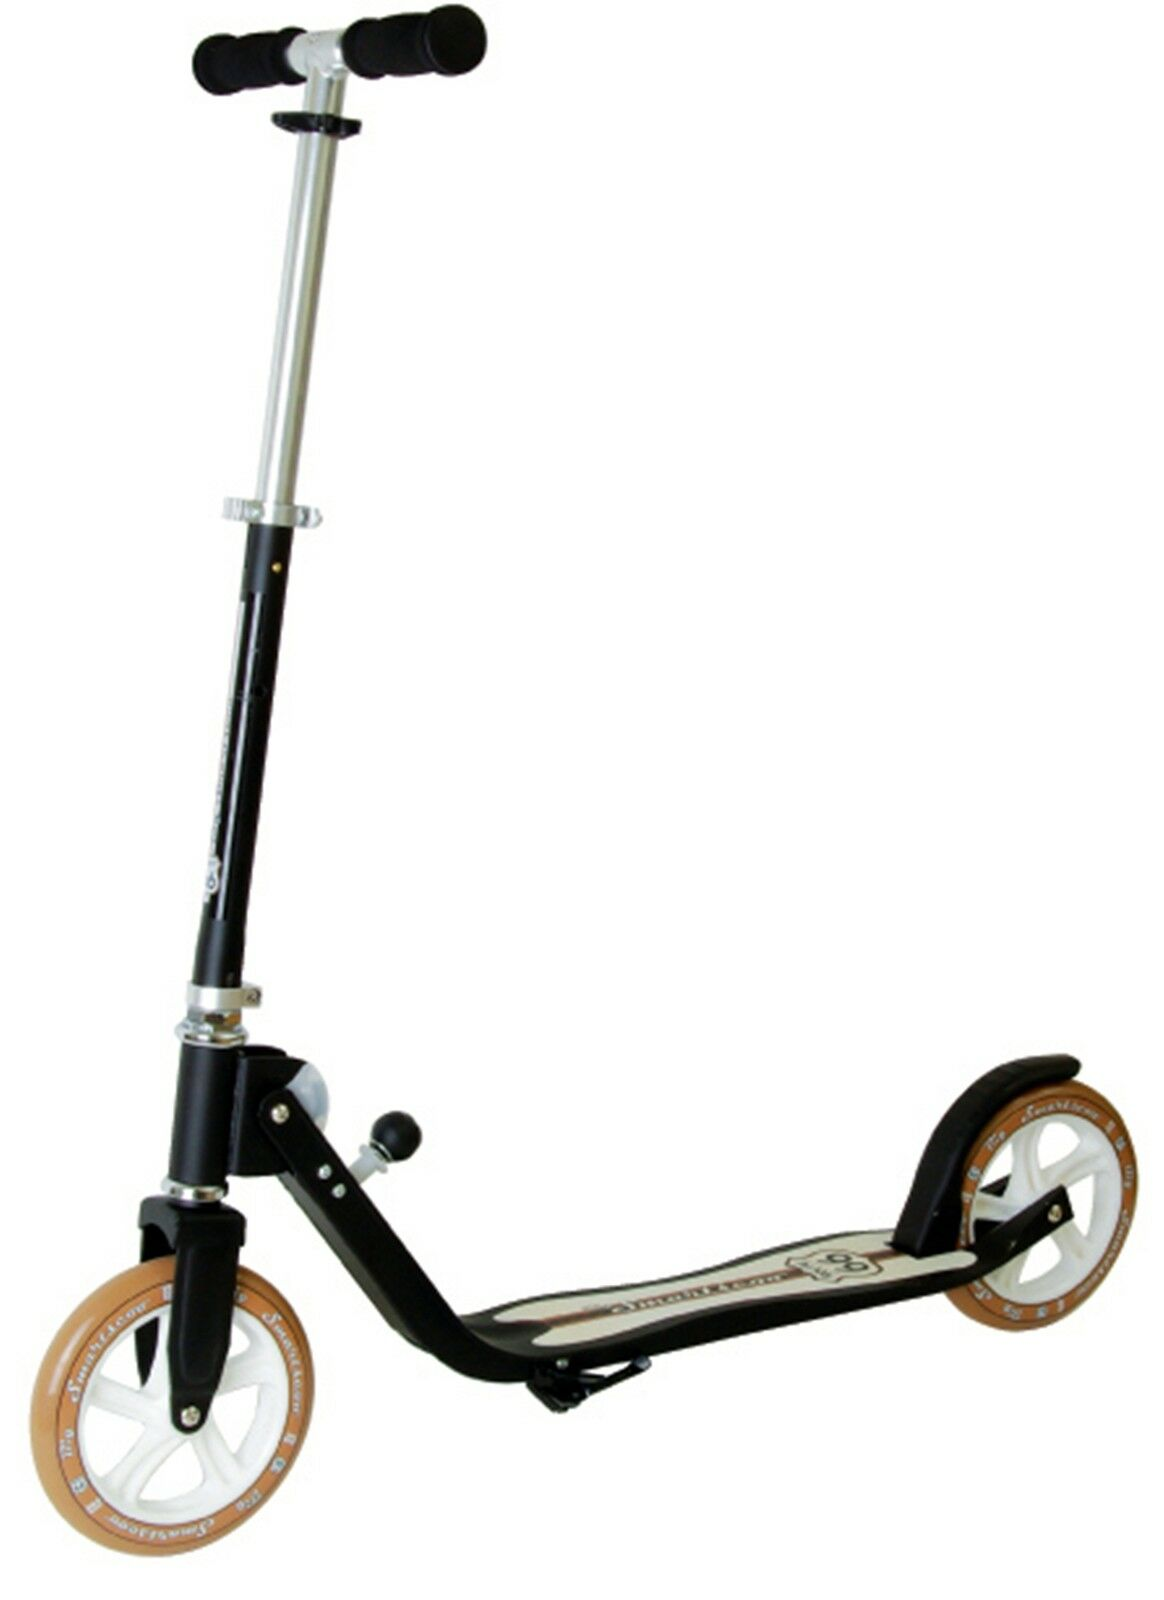 Scooter Smartscoo Big 200 City Scooter 4 Designs Scooter